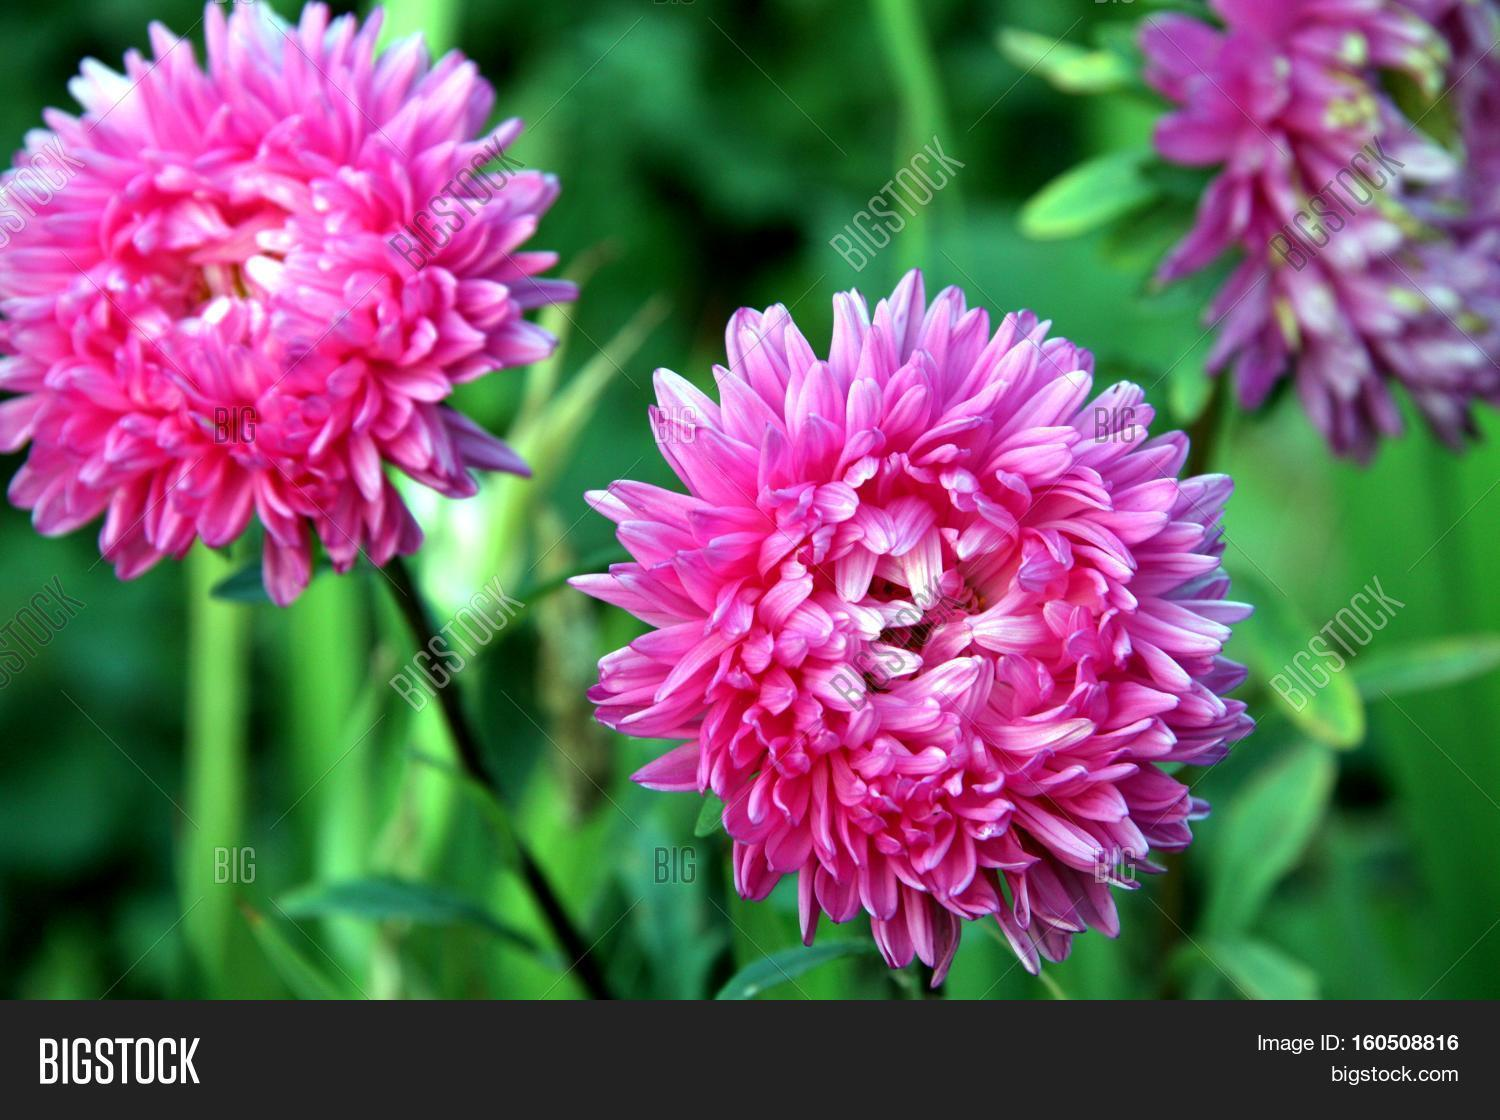 Autumn Flowers Pink Image Photo Free Trial Bigstock